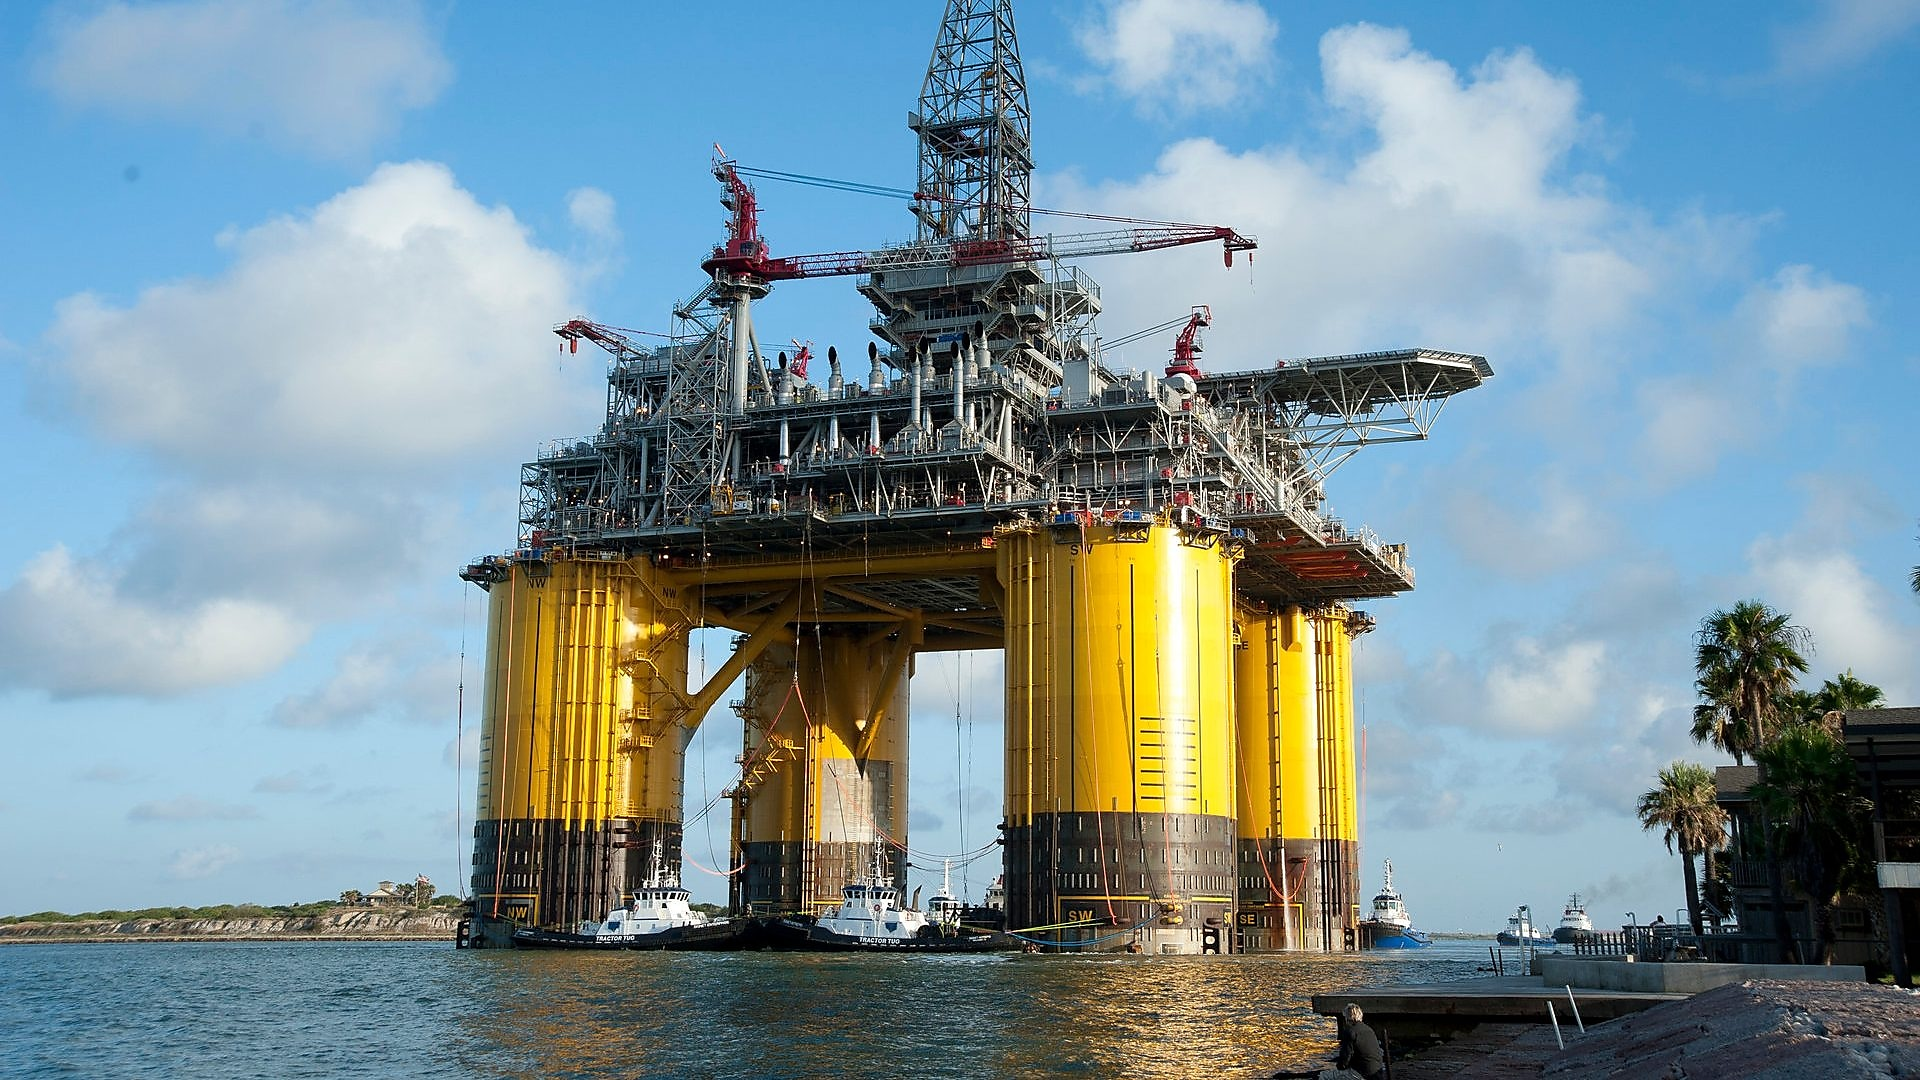 Penske Near Me >> About Shell Deep Water in the Gulf of Mexico | Shell United States